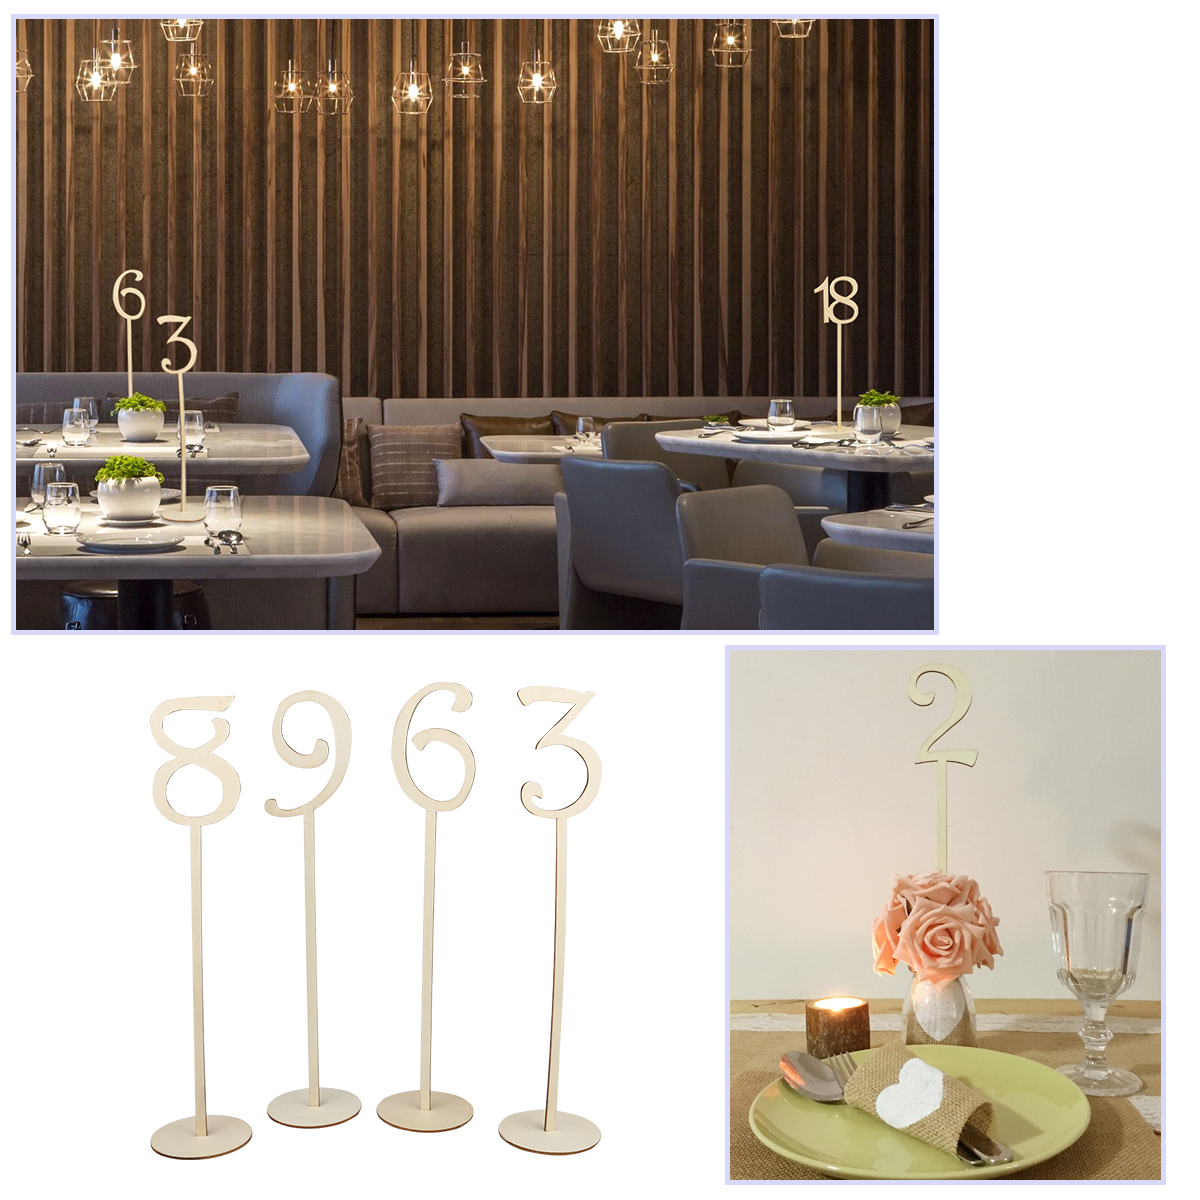 Wedding Table Number Table Cards Seat Cards Table Number Signs Place Holder Wedding Decoration Party Supplies Home Decoration